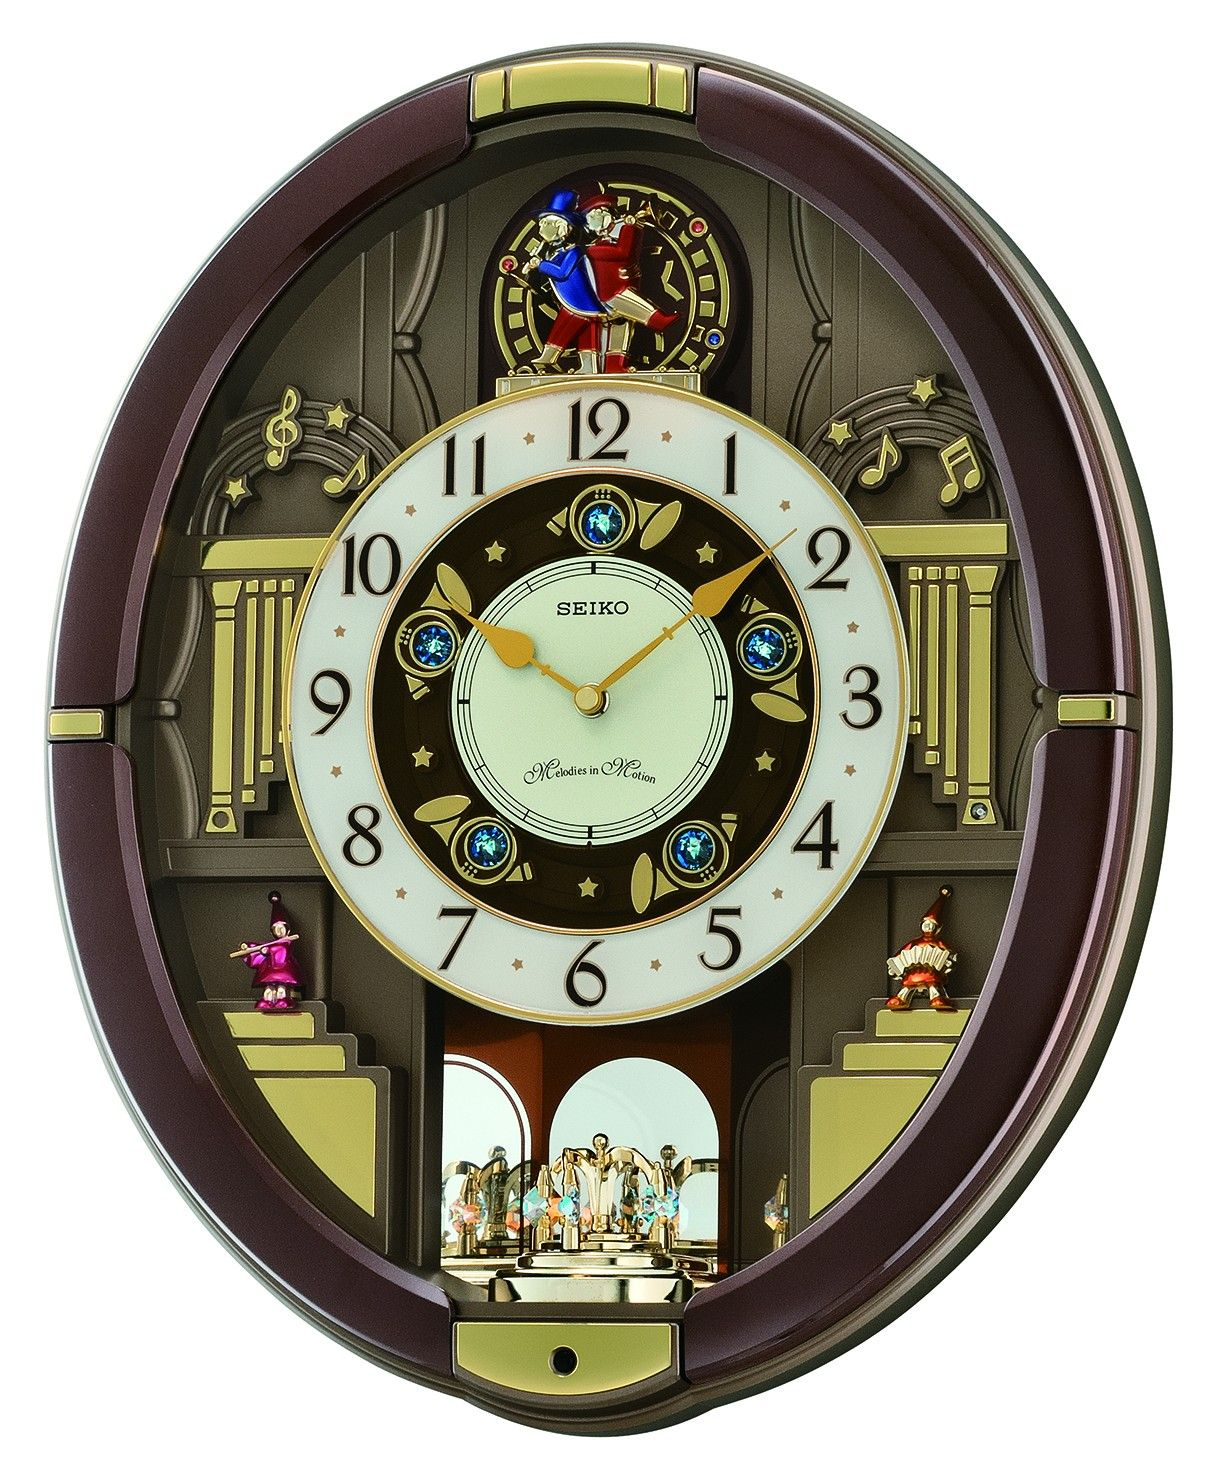 Danube melodies in motion clock 28125 books worth reading danube melodies in motion clock 28125 amipublicfo Images